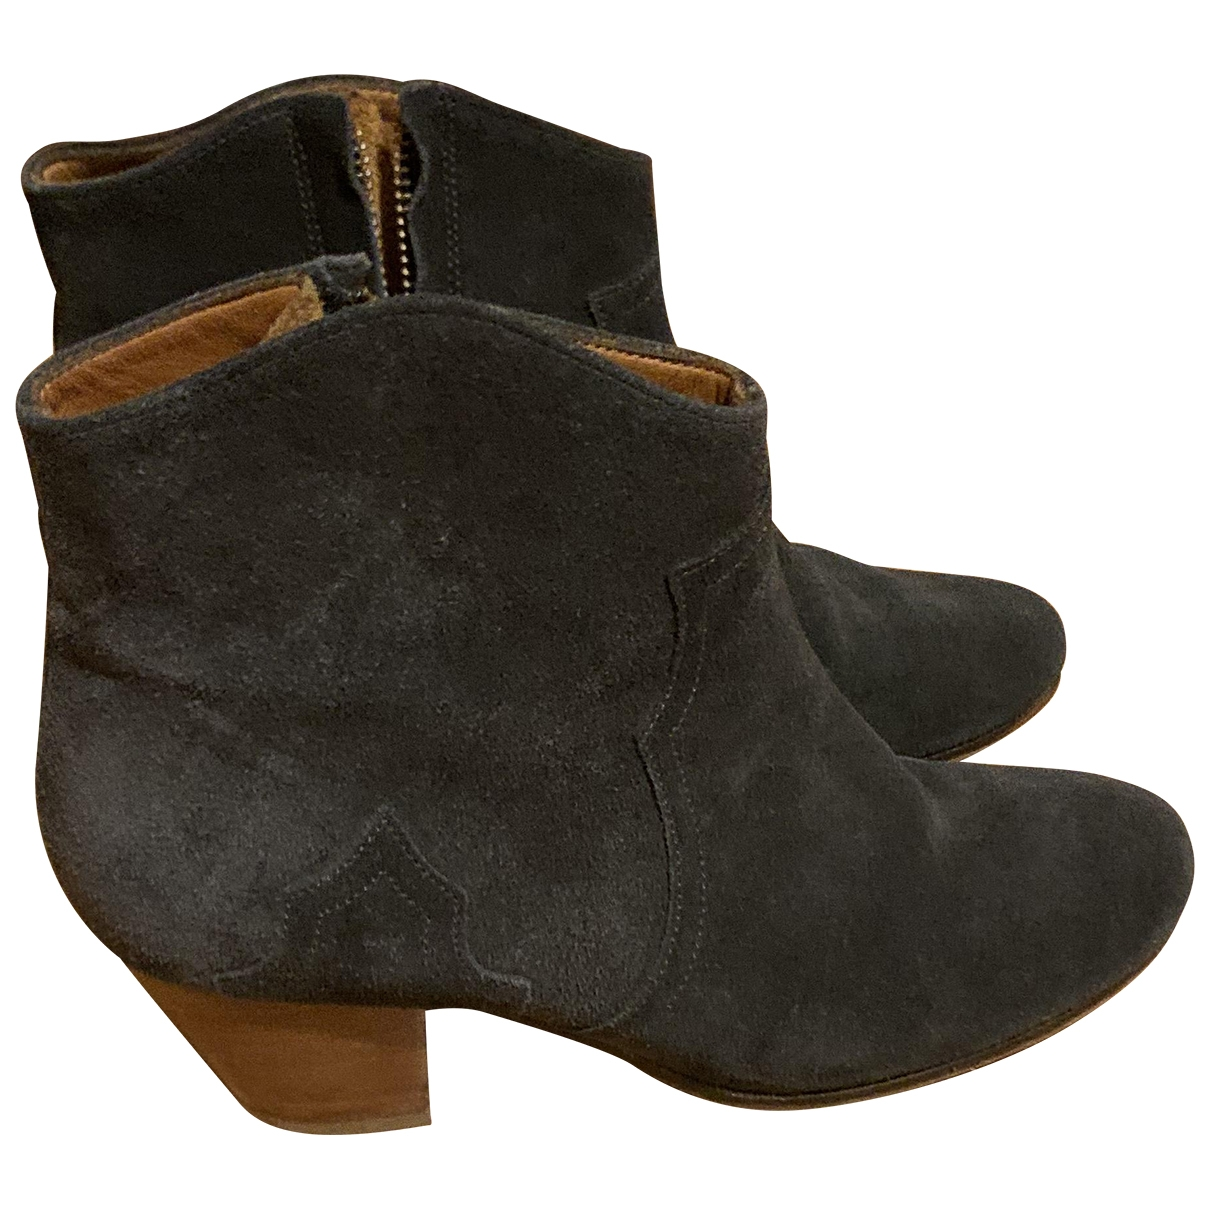 Isabel Marant Dicker Black Suede Ankle boots for Women 36 EU